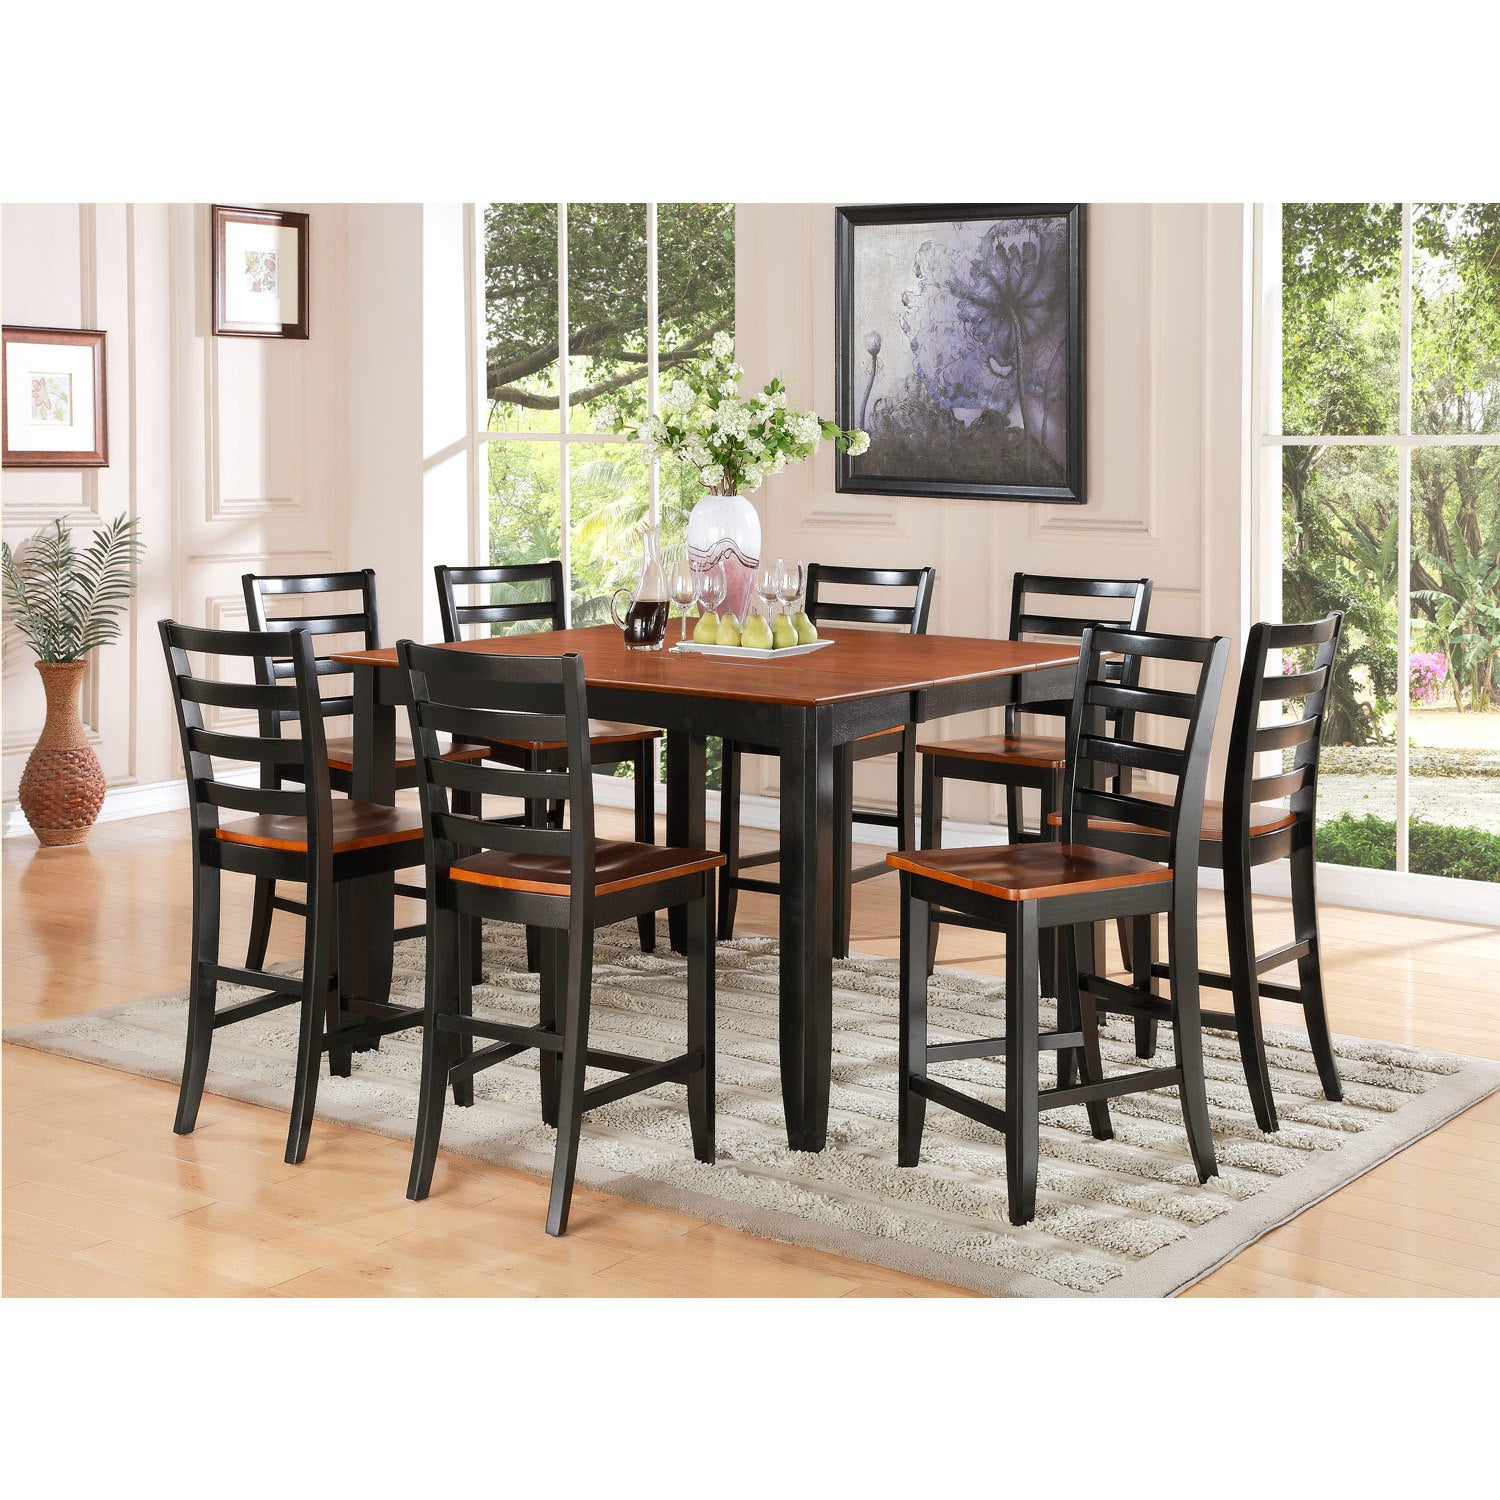 FAIR9-BLK-W Black Rubberwood 9-piece Counter-height Table...